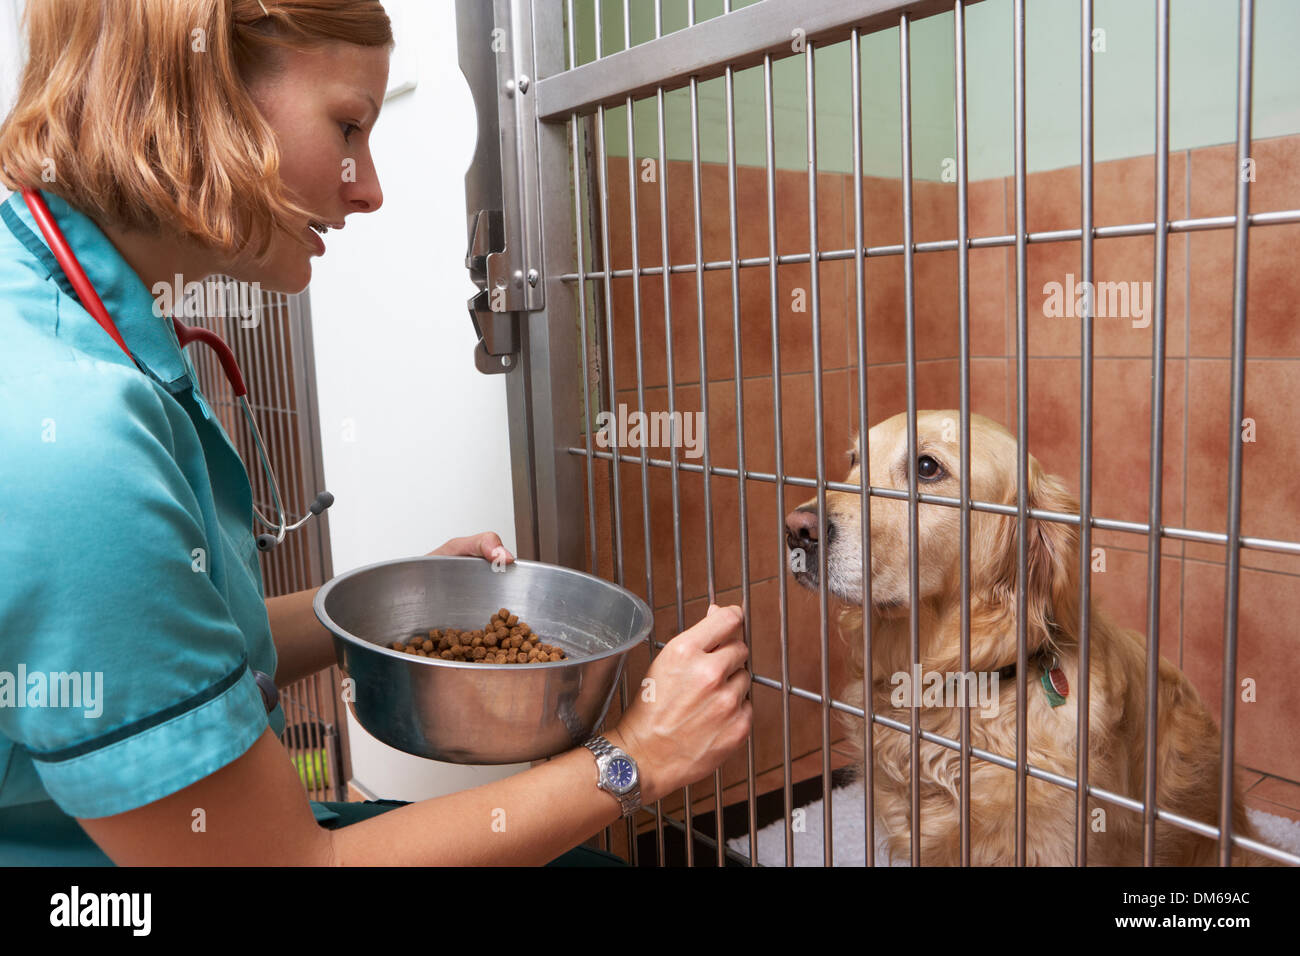 Veterinary Nurse Feeding Dog In Cage - Stock Image